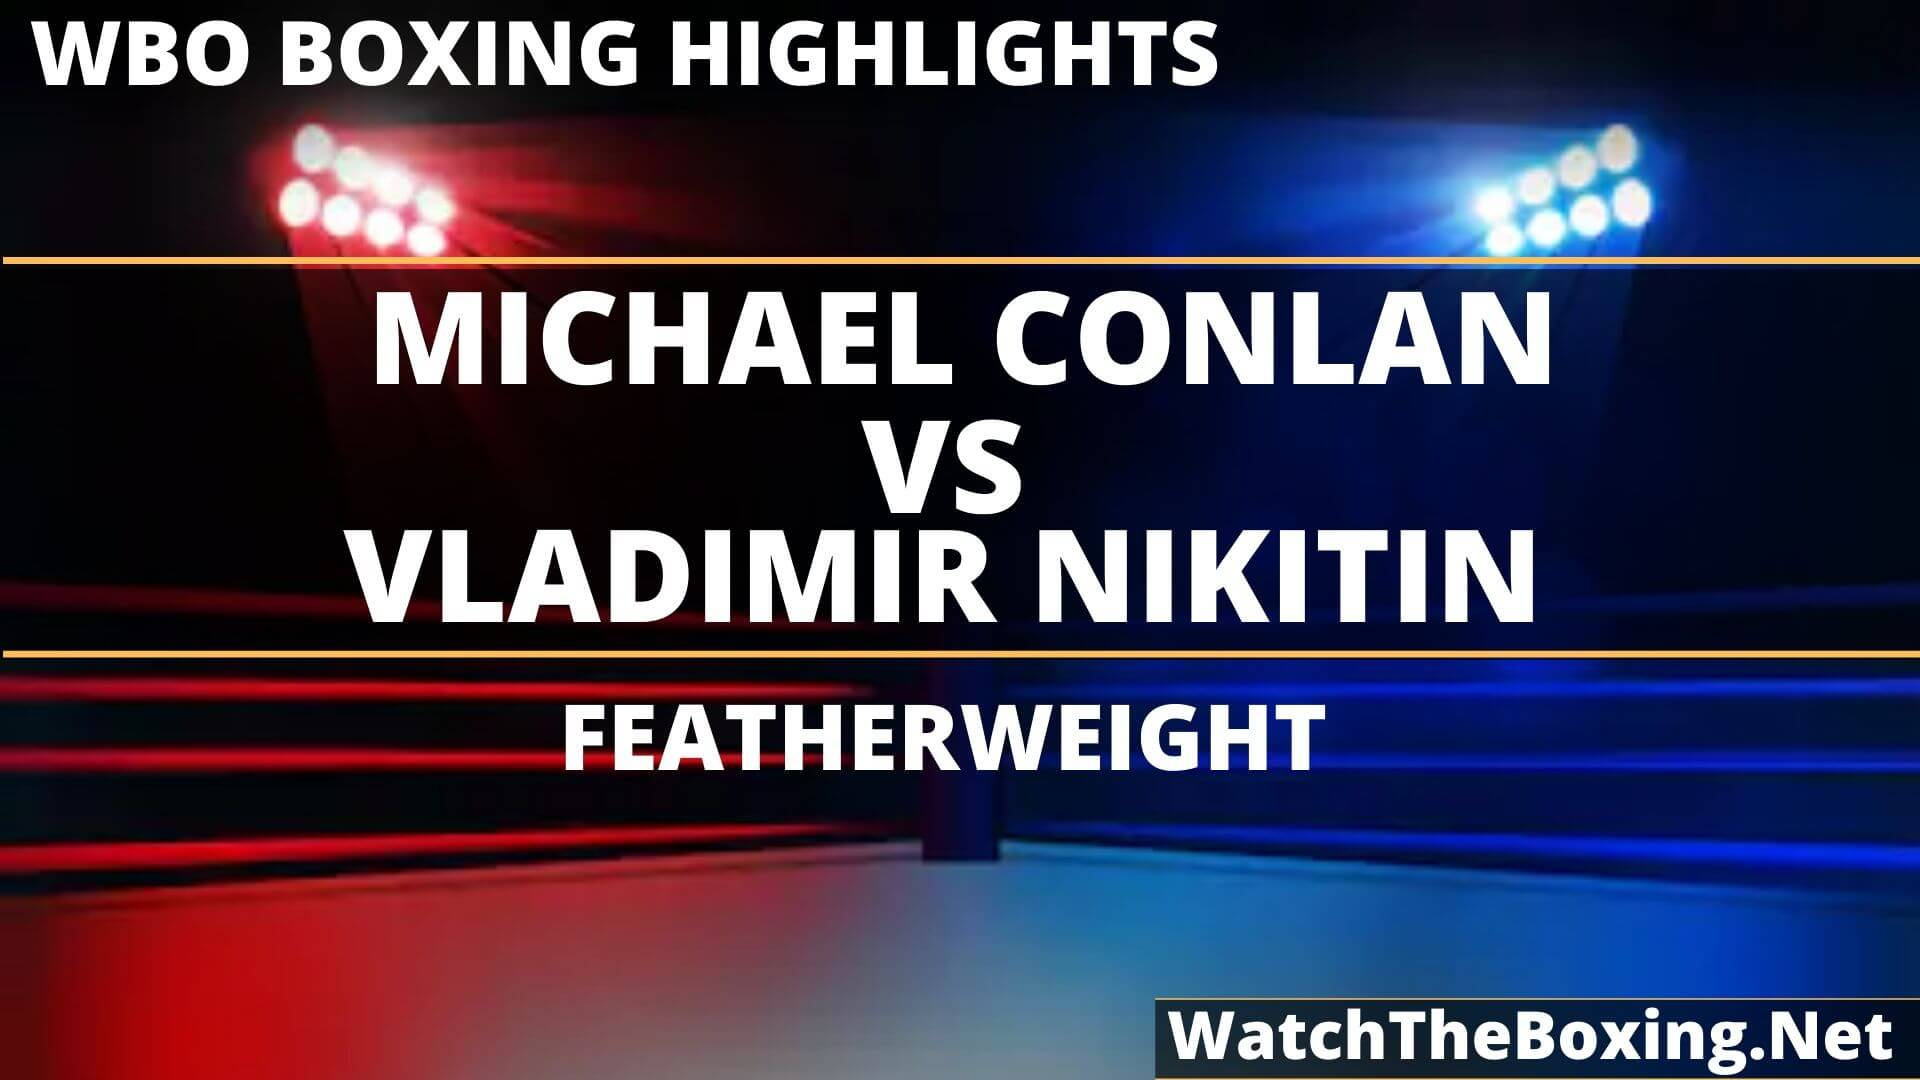 Michael Conlan Vs Vladimir Nikitin Highlights 2019